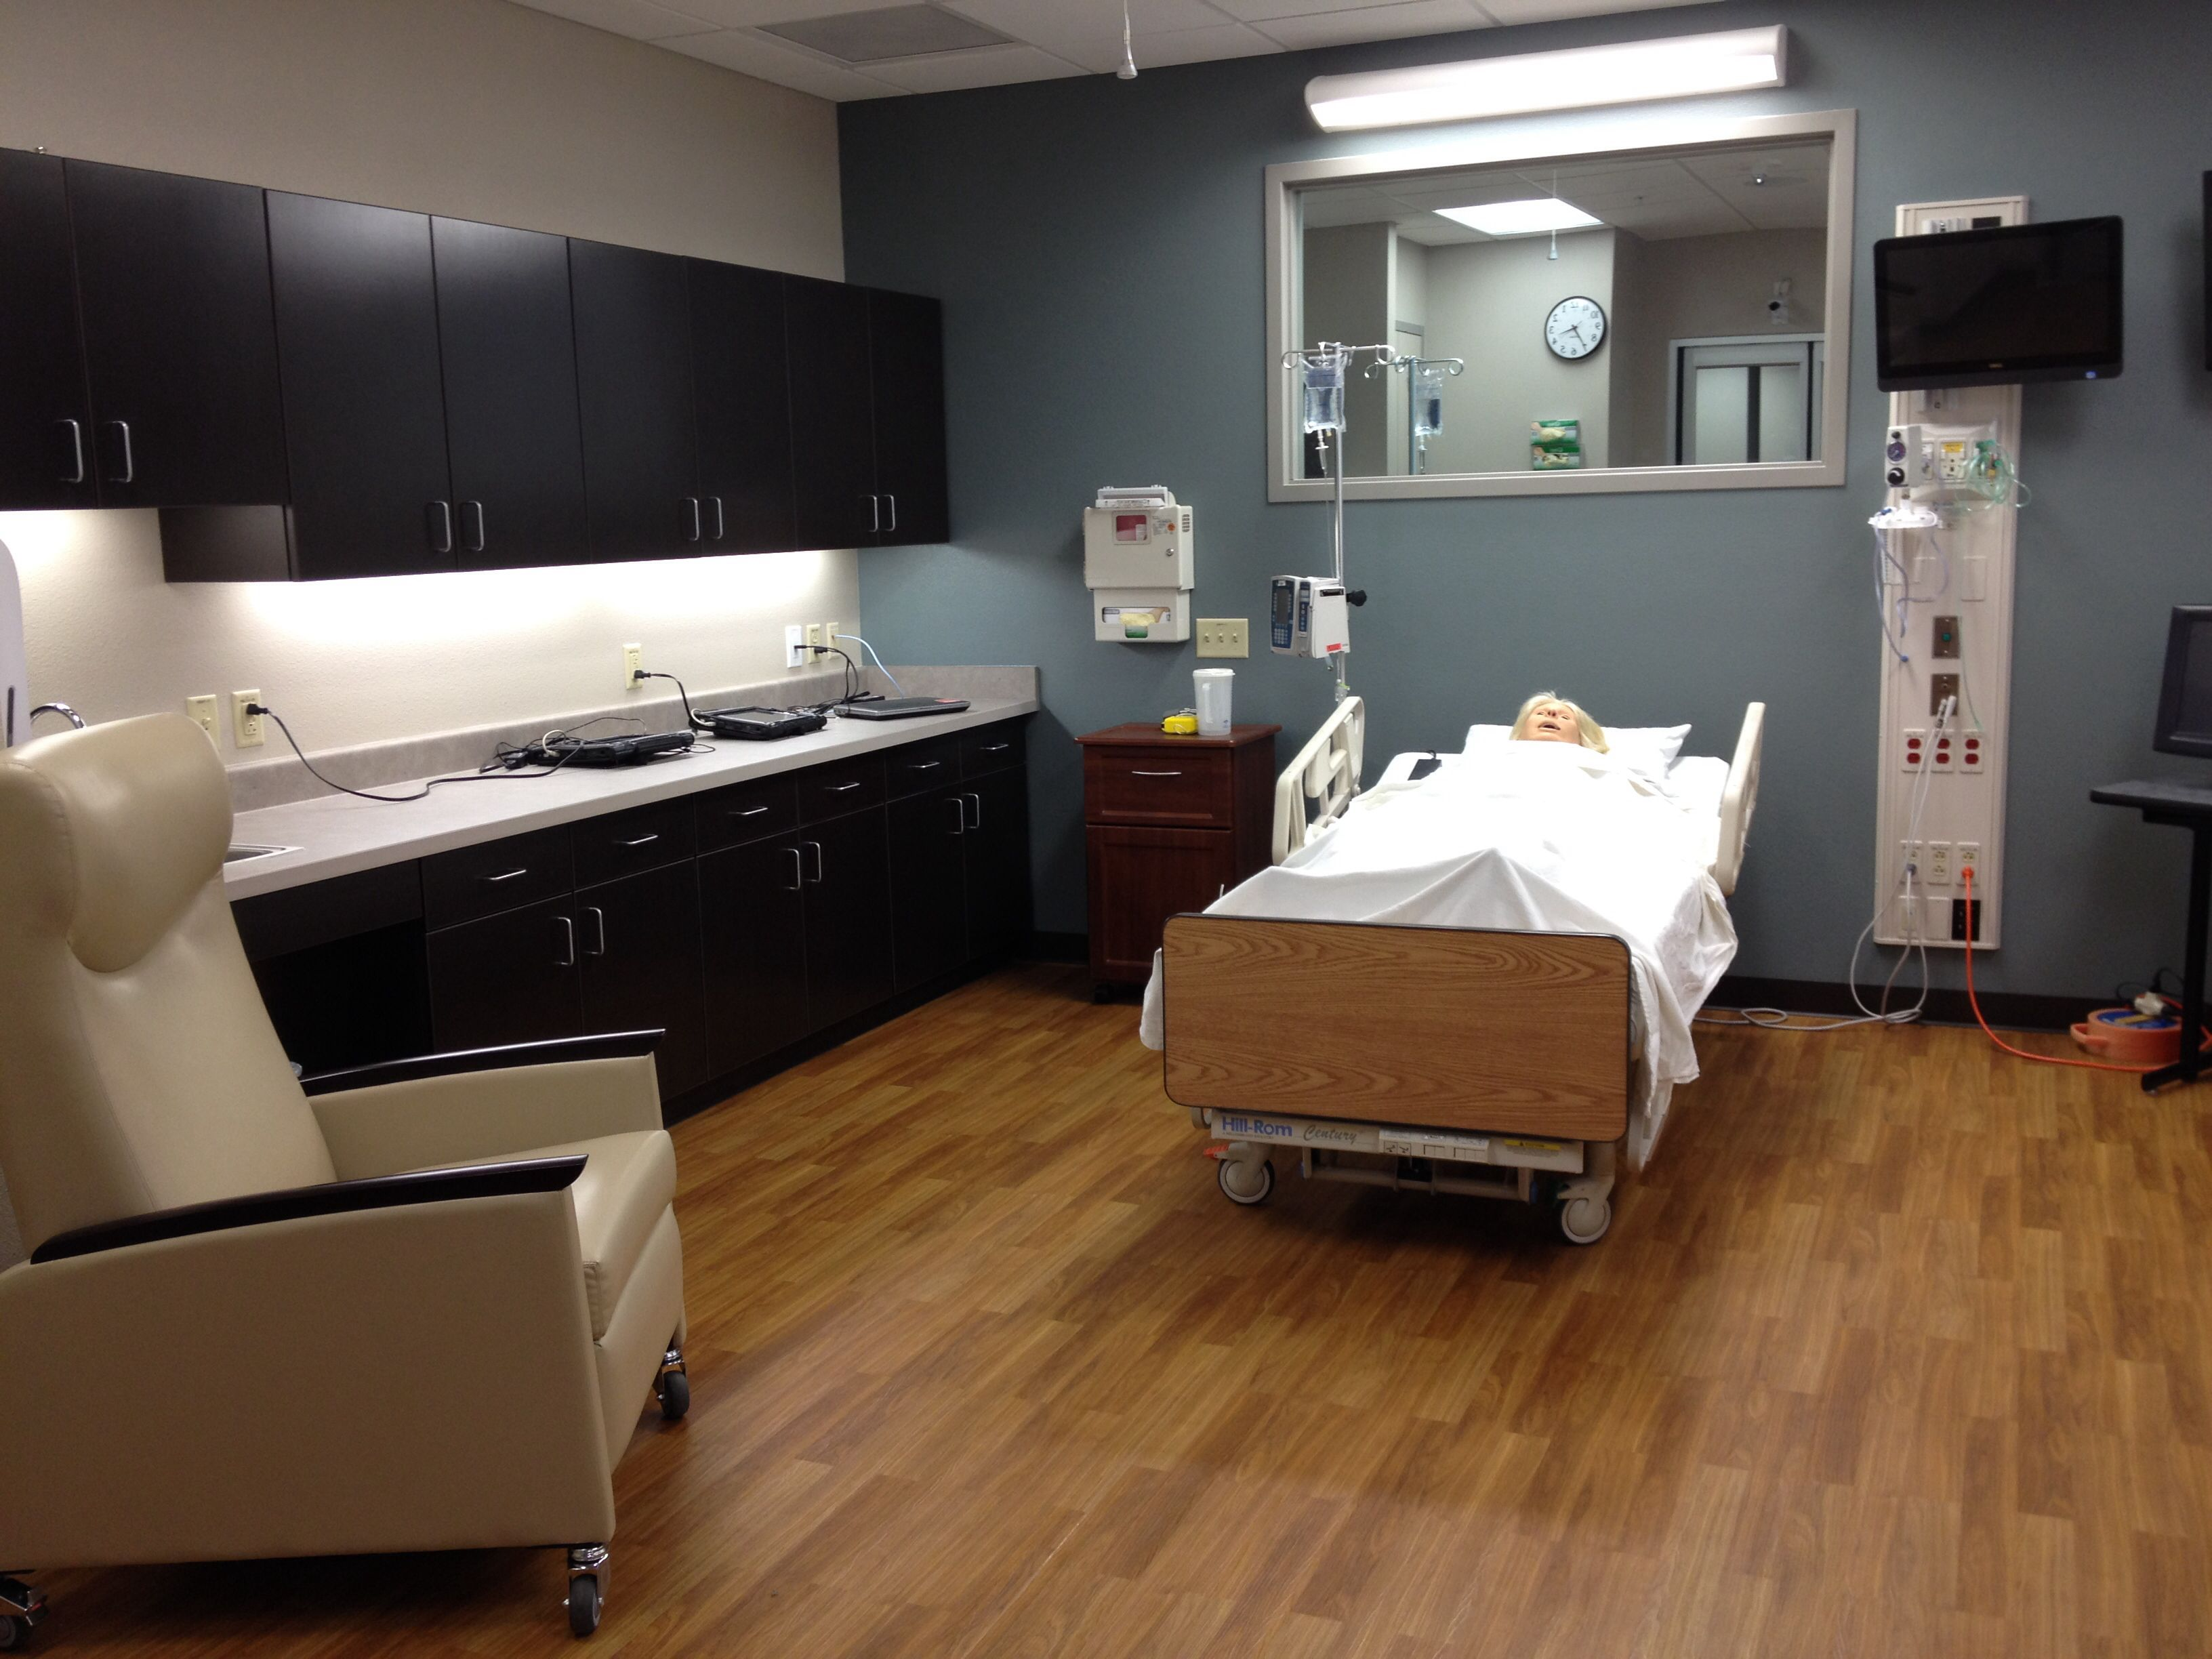 Fox valley technical college health simulation